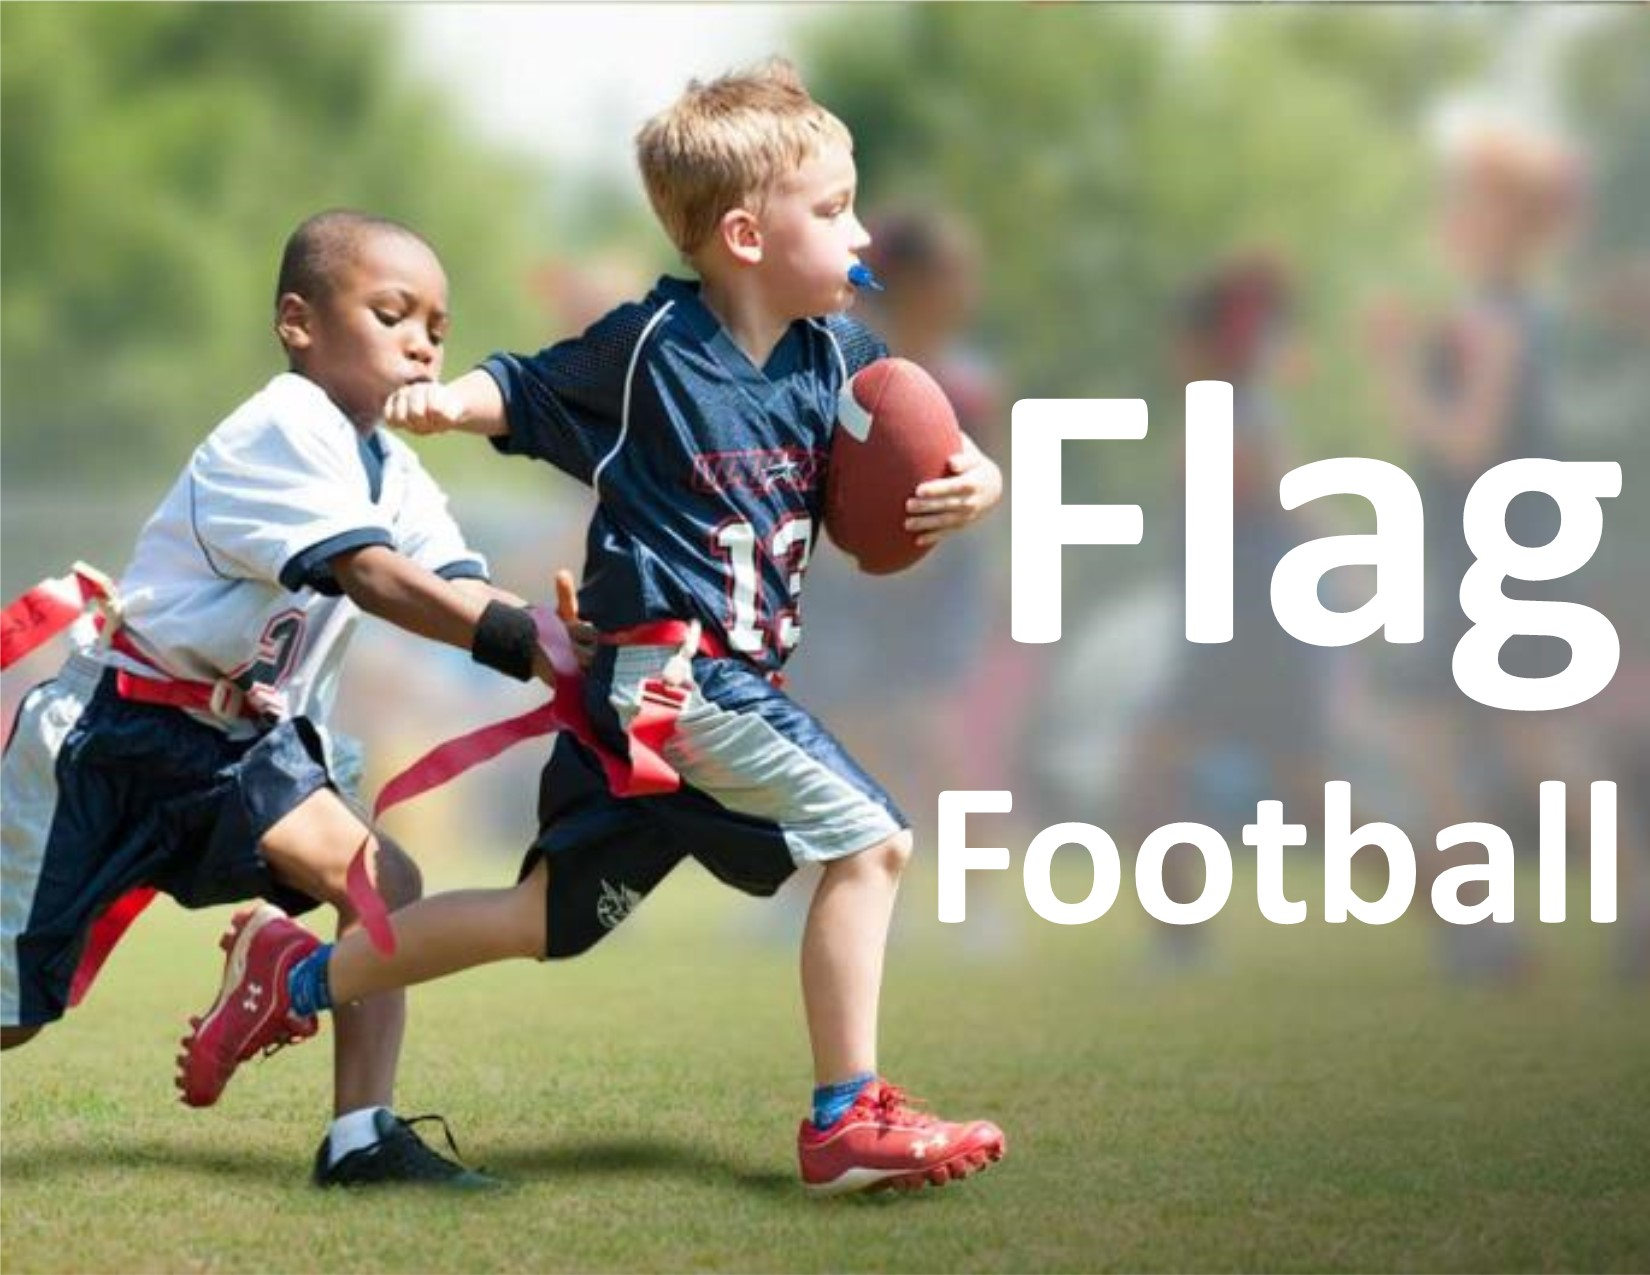 Flag_Football_Icon.jpg